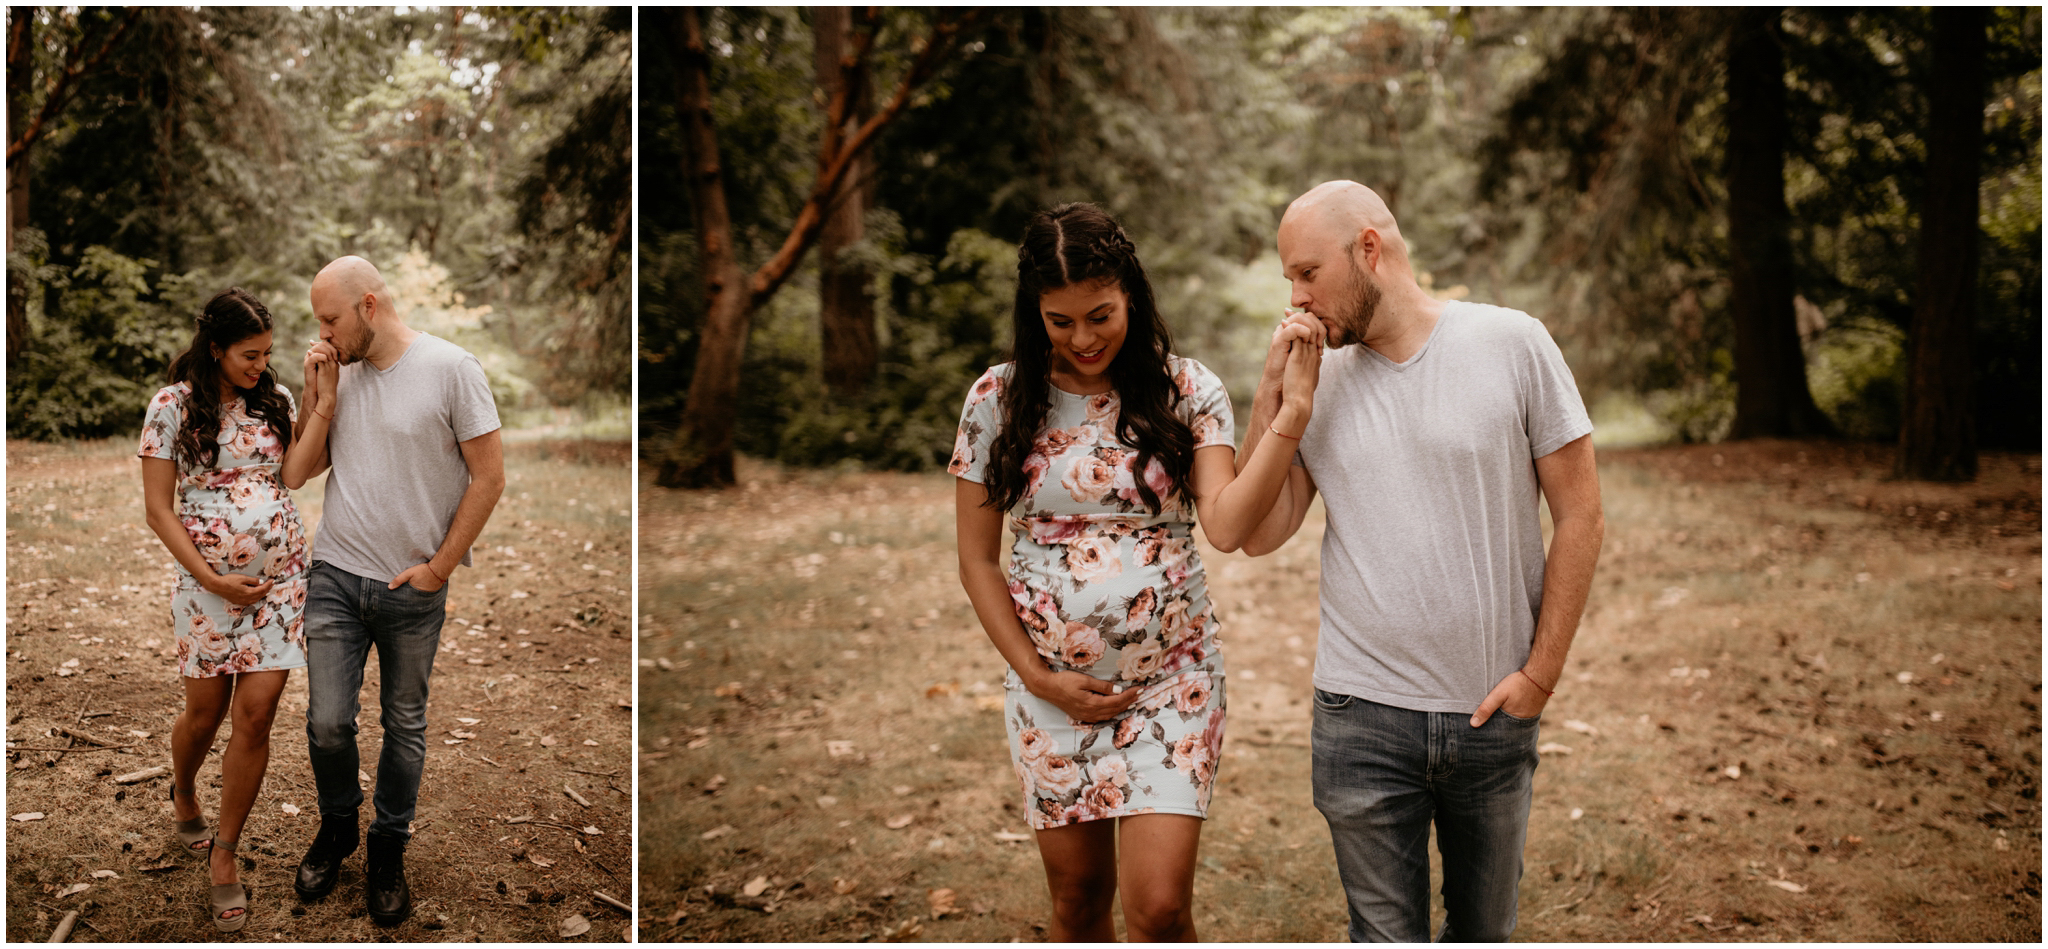 caitlin-jake-maternity-session-seattle-portrait-photographer-024.jpg